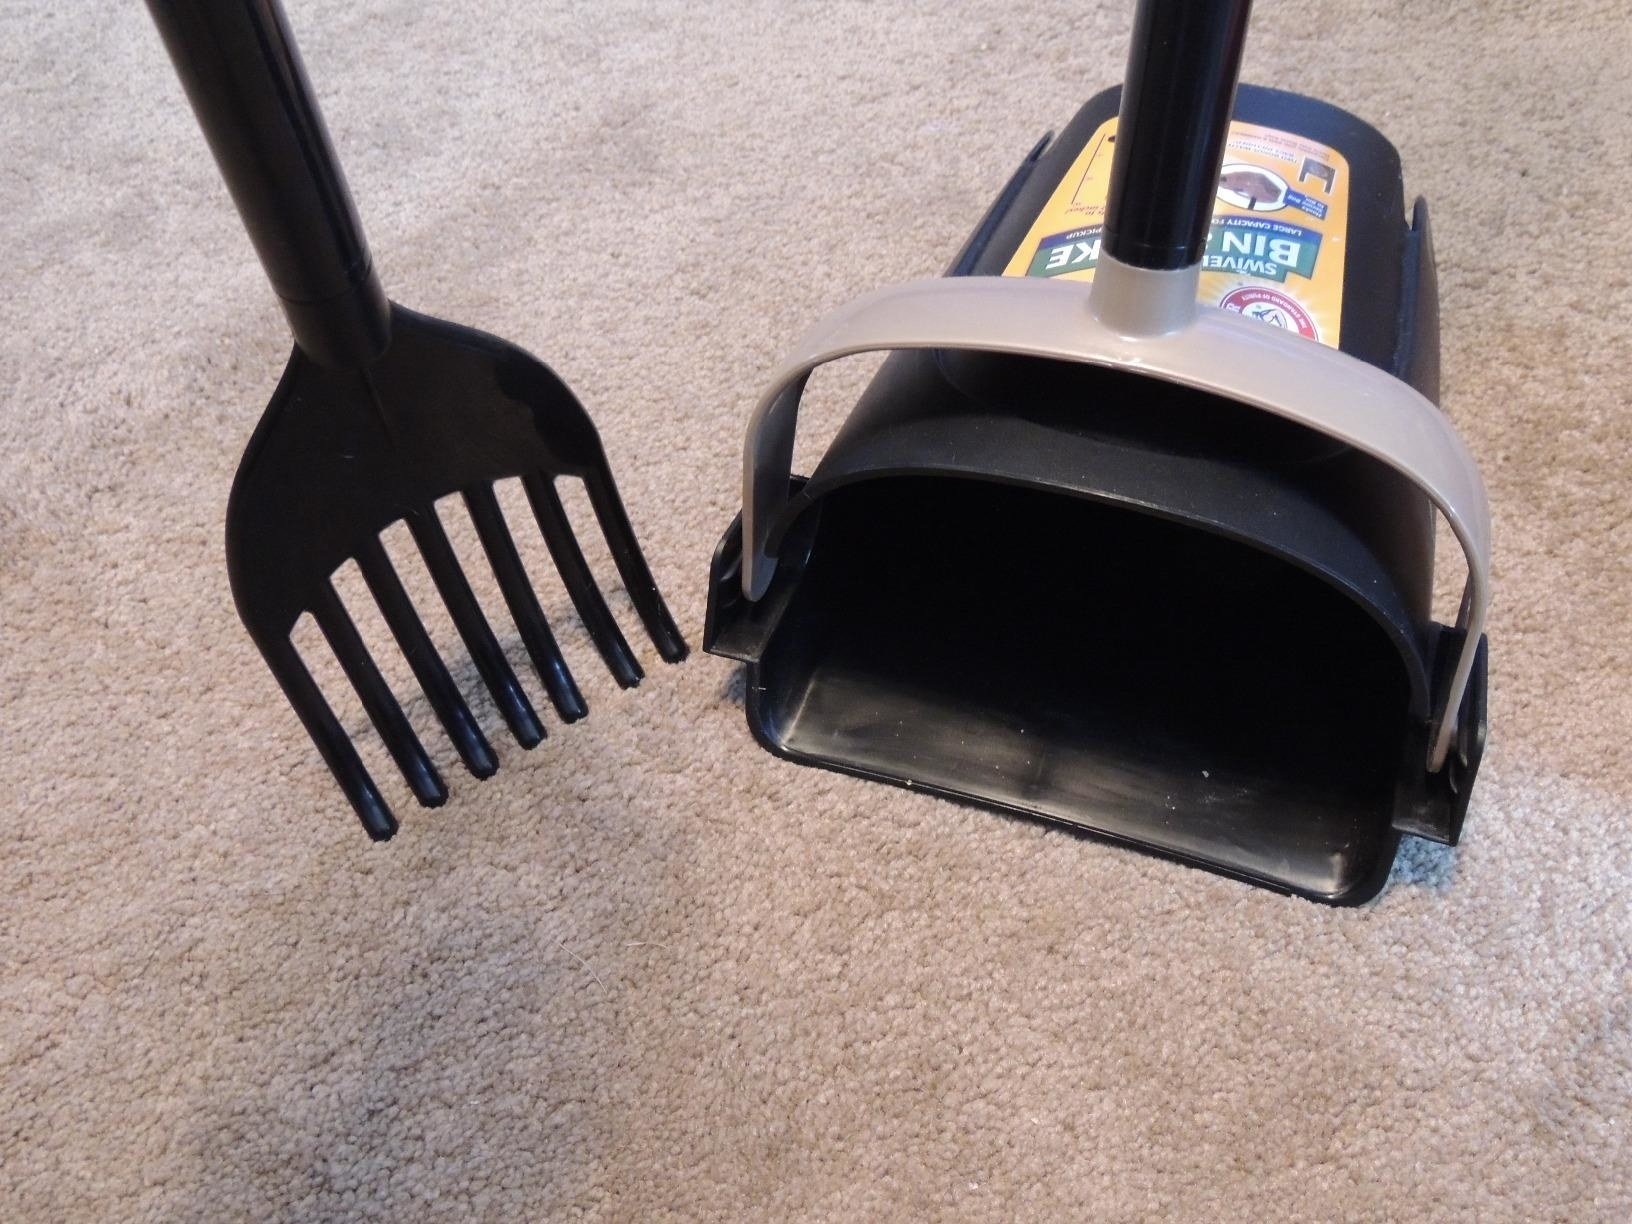 The rake and the bin, both of which are mounted on long handles